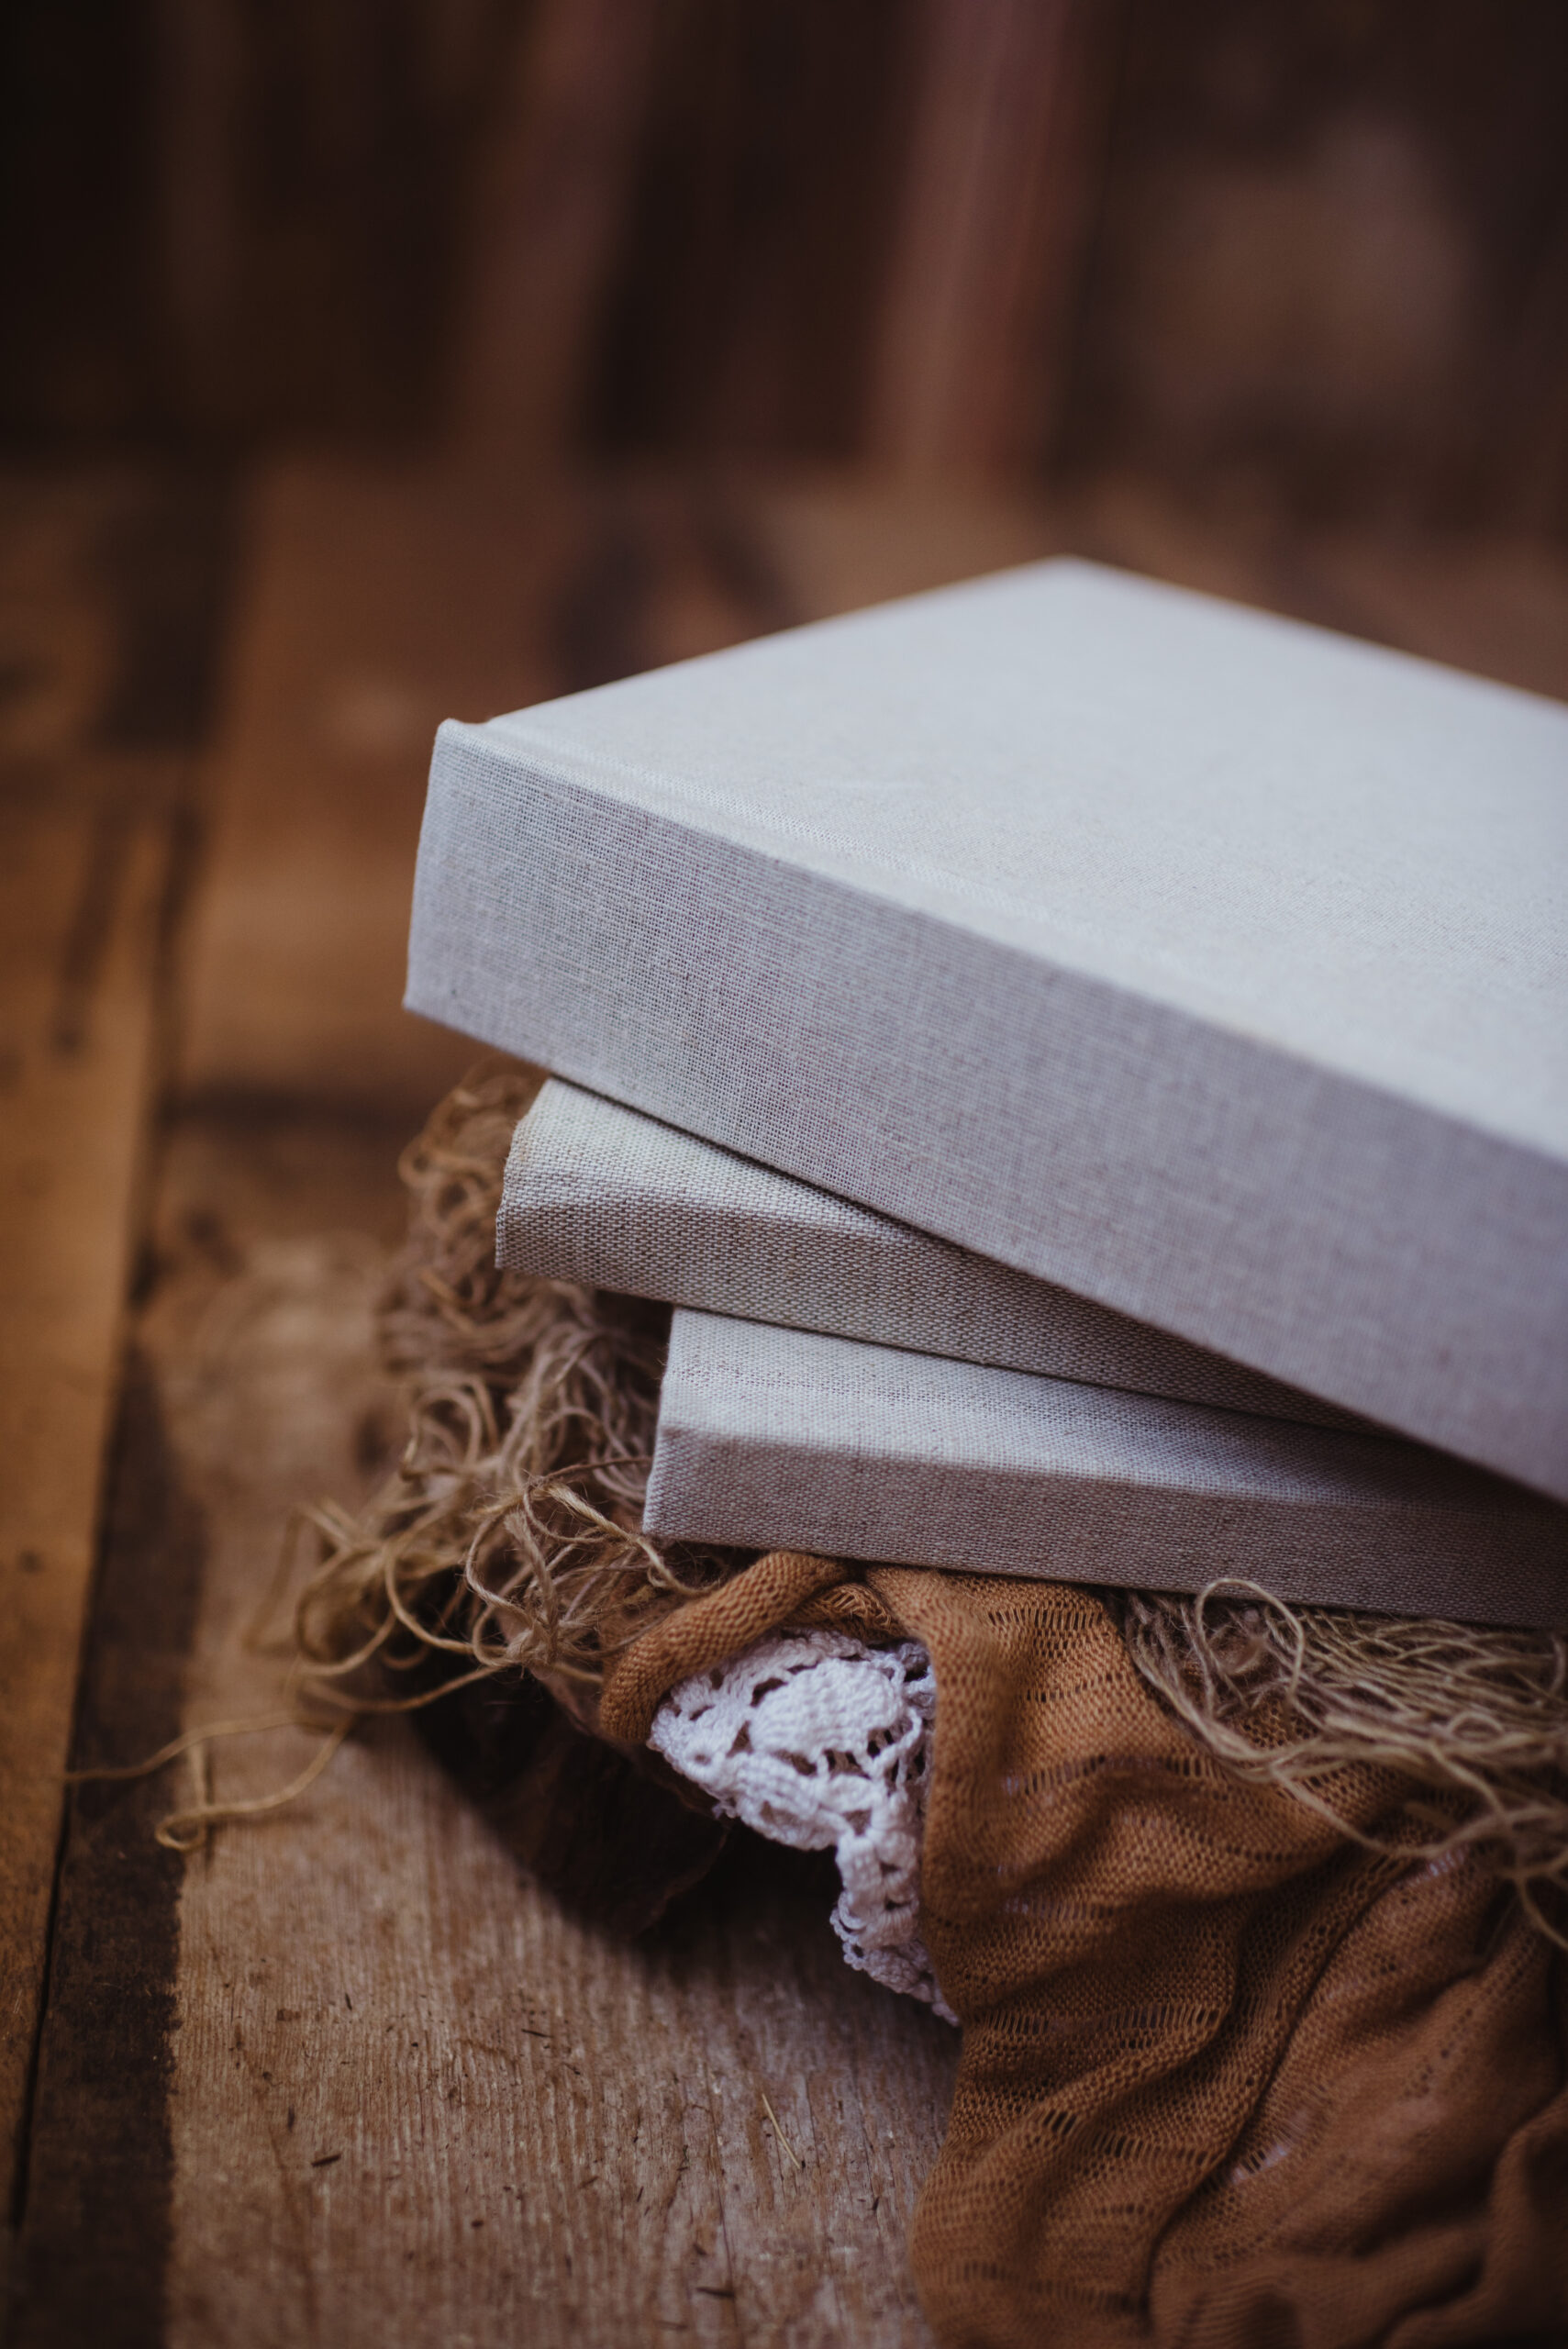 Our 8x8 heirloom albums are simply the best wrapped photo book available. Together, we carefully create the perfect spreads with you. Without a doubt, you will love this amazing product!